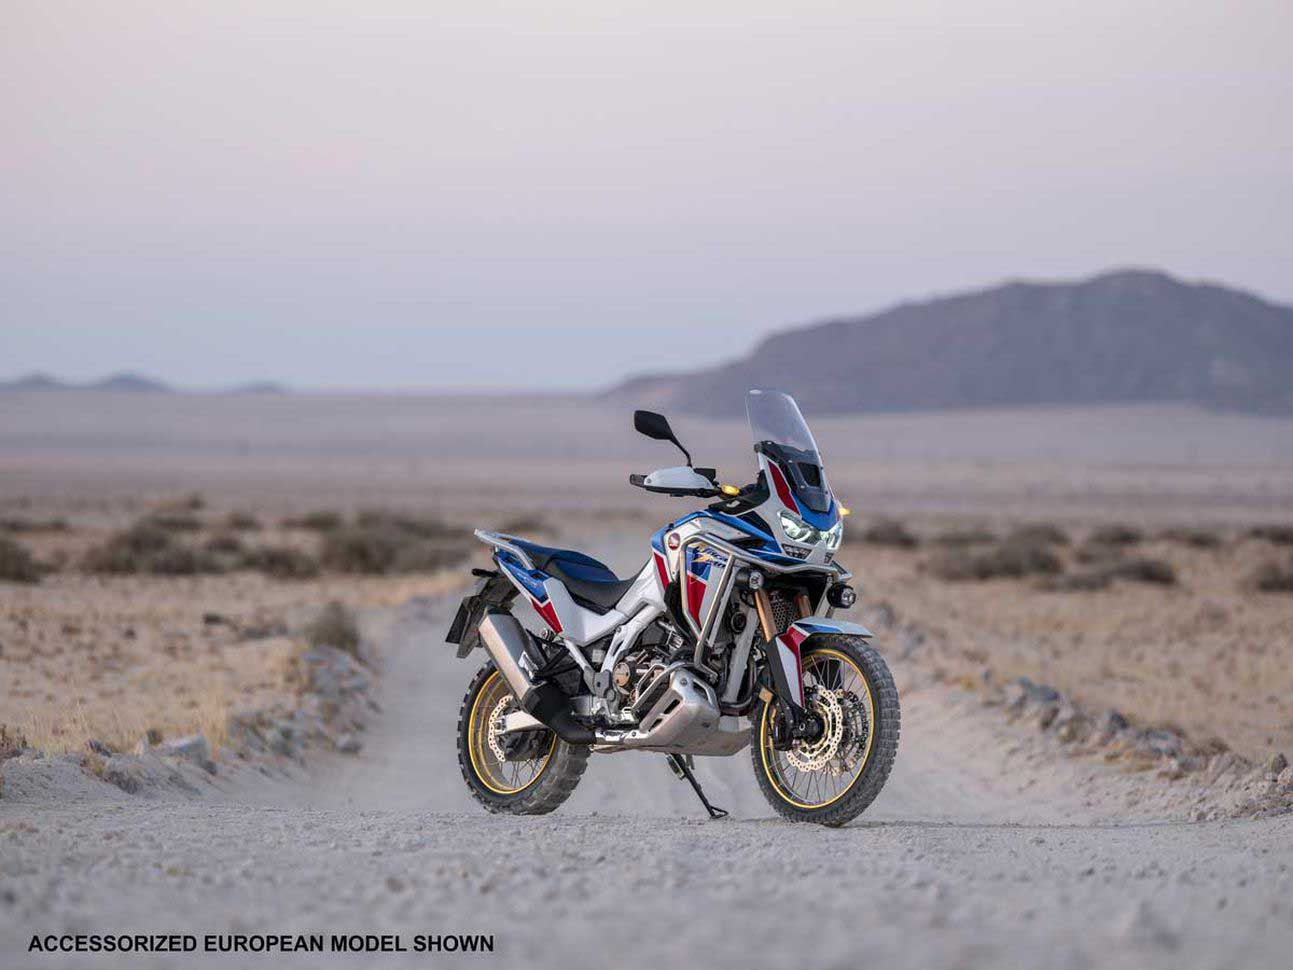 My large-bore adventure rig would be the Honda Africa Twin Adventure Sports ES.